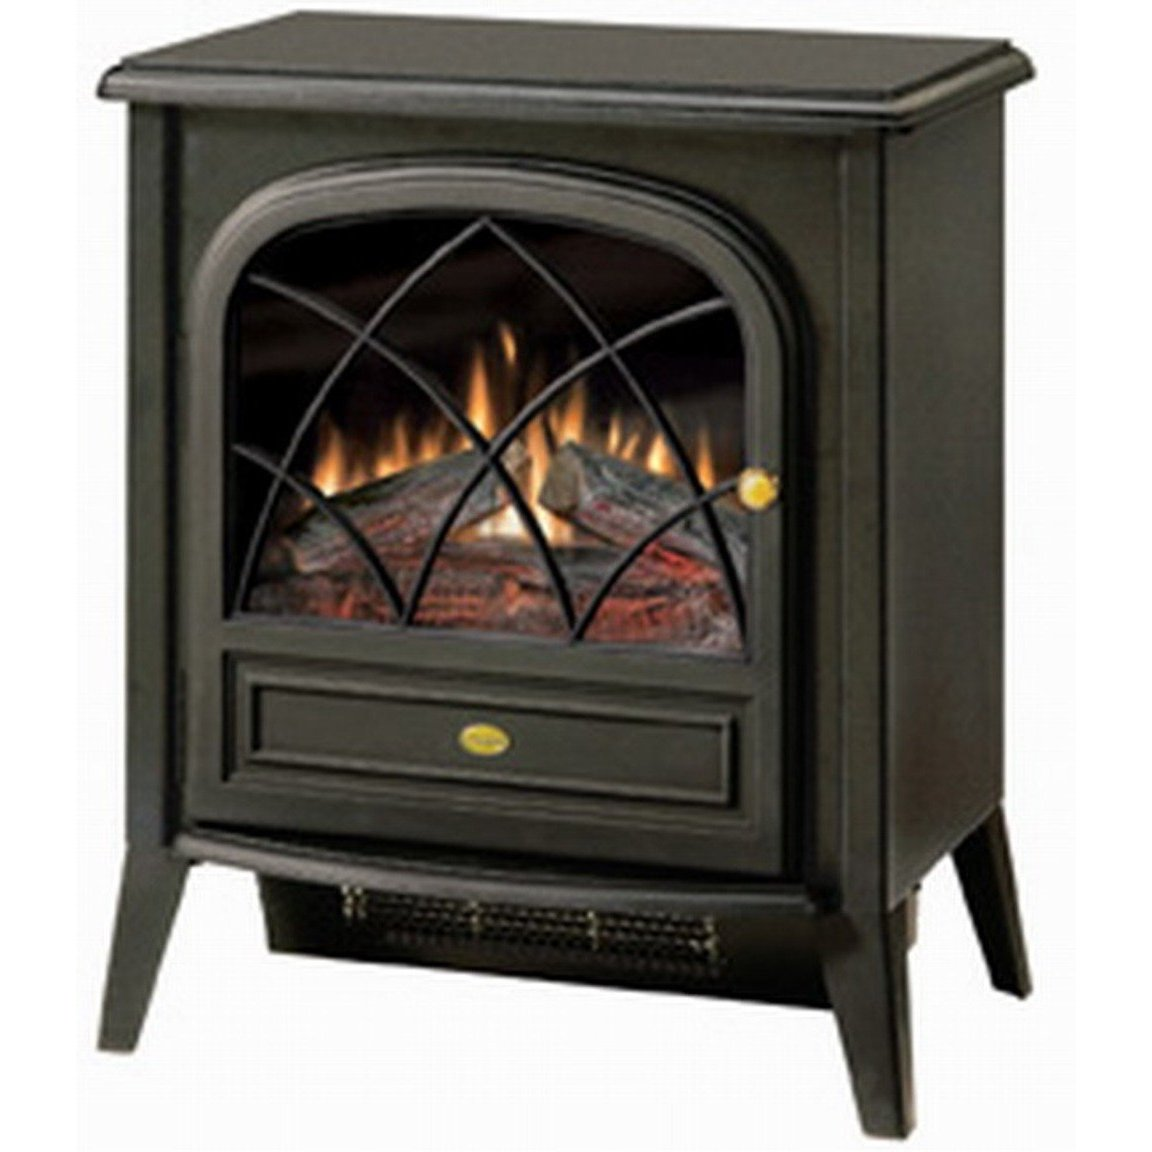 Electric Stove Heater ~ Dimplex compact electric stove patio heater review